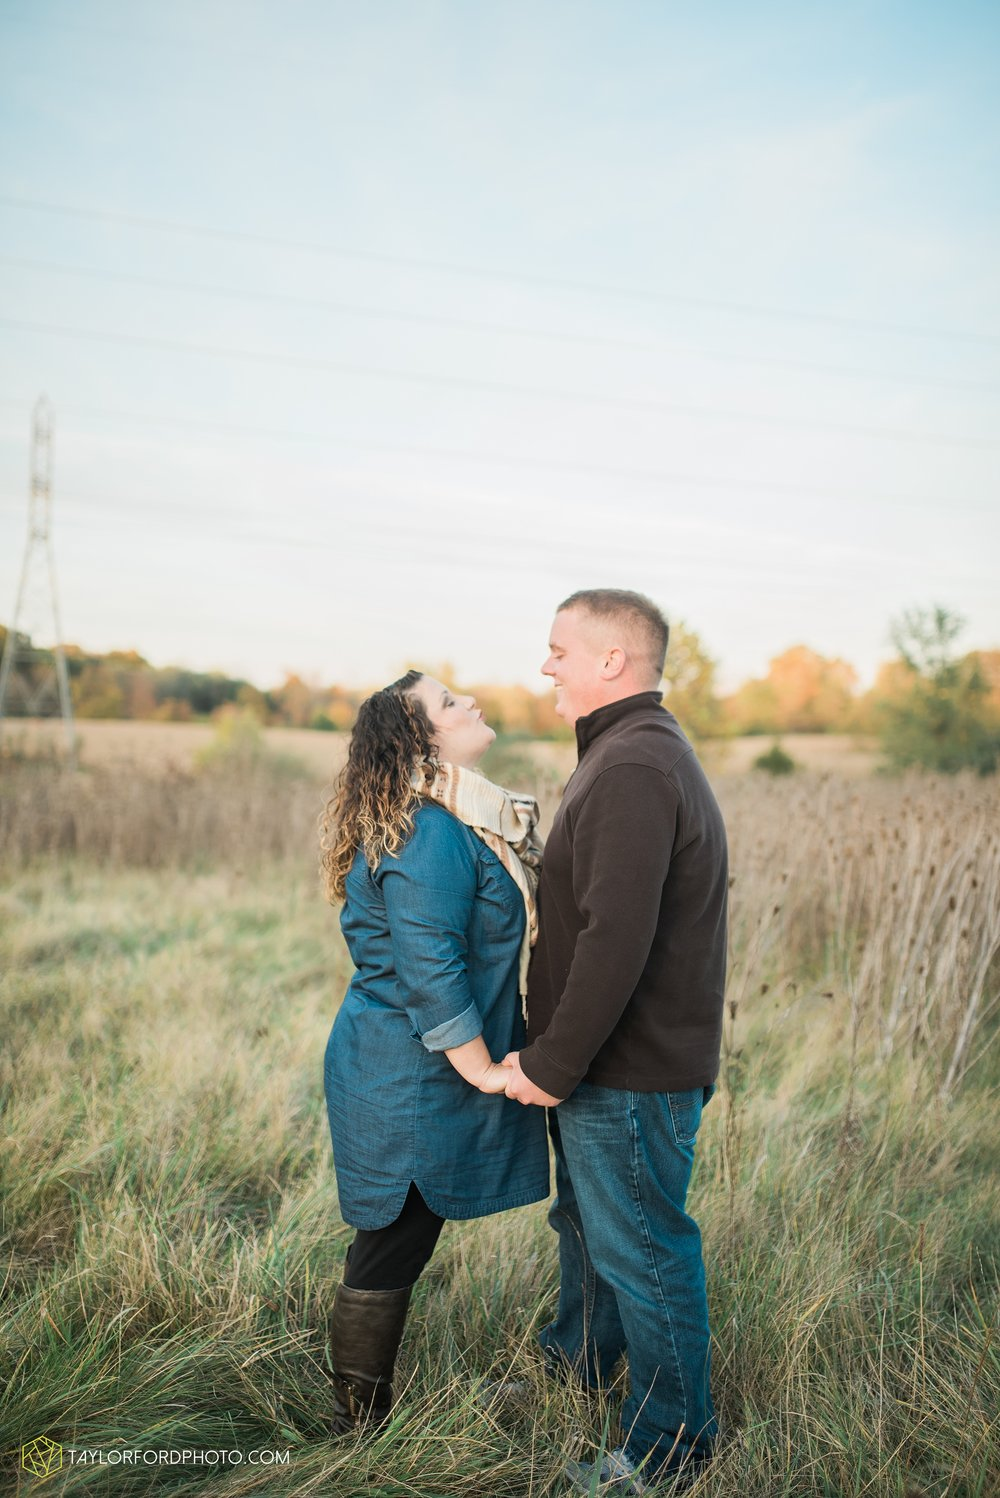 fort-wayne-indiana-family-photographer-nature-outdoor-Taylor-Ford-Photography_4590.jpg